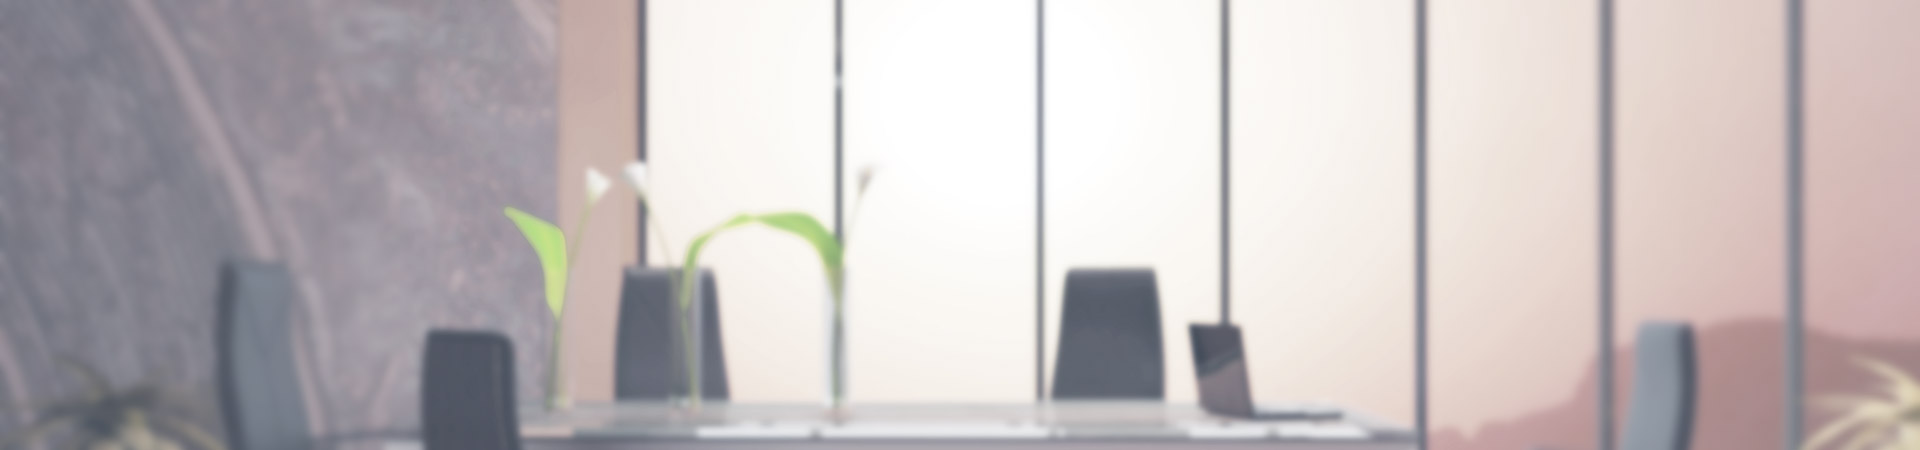 Office-background